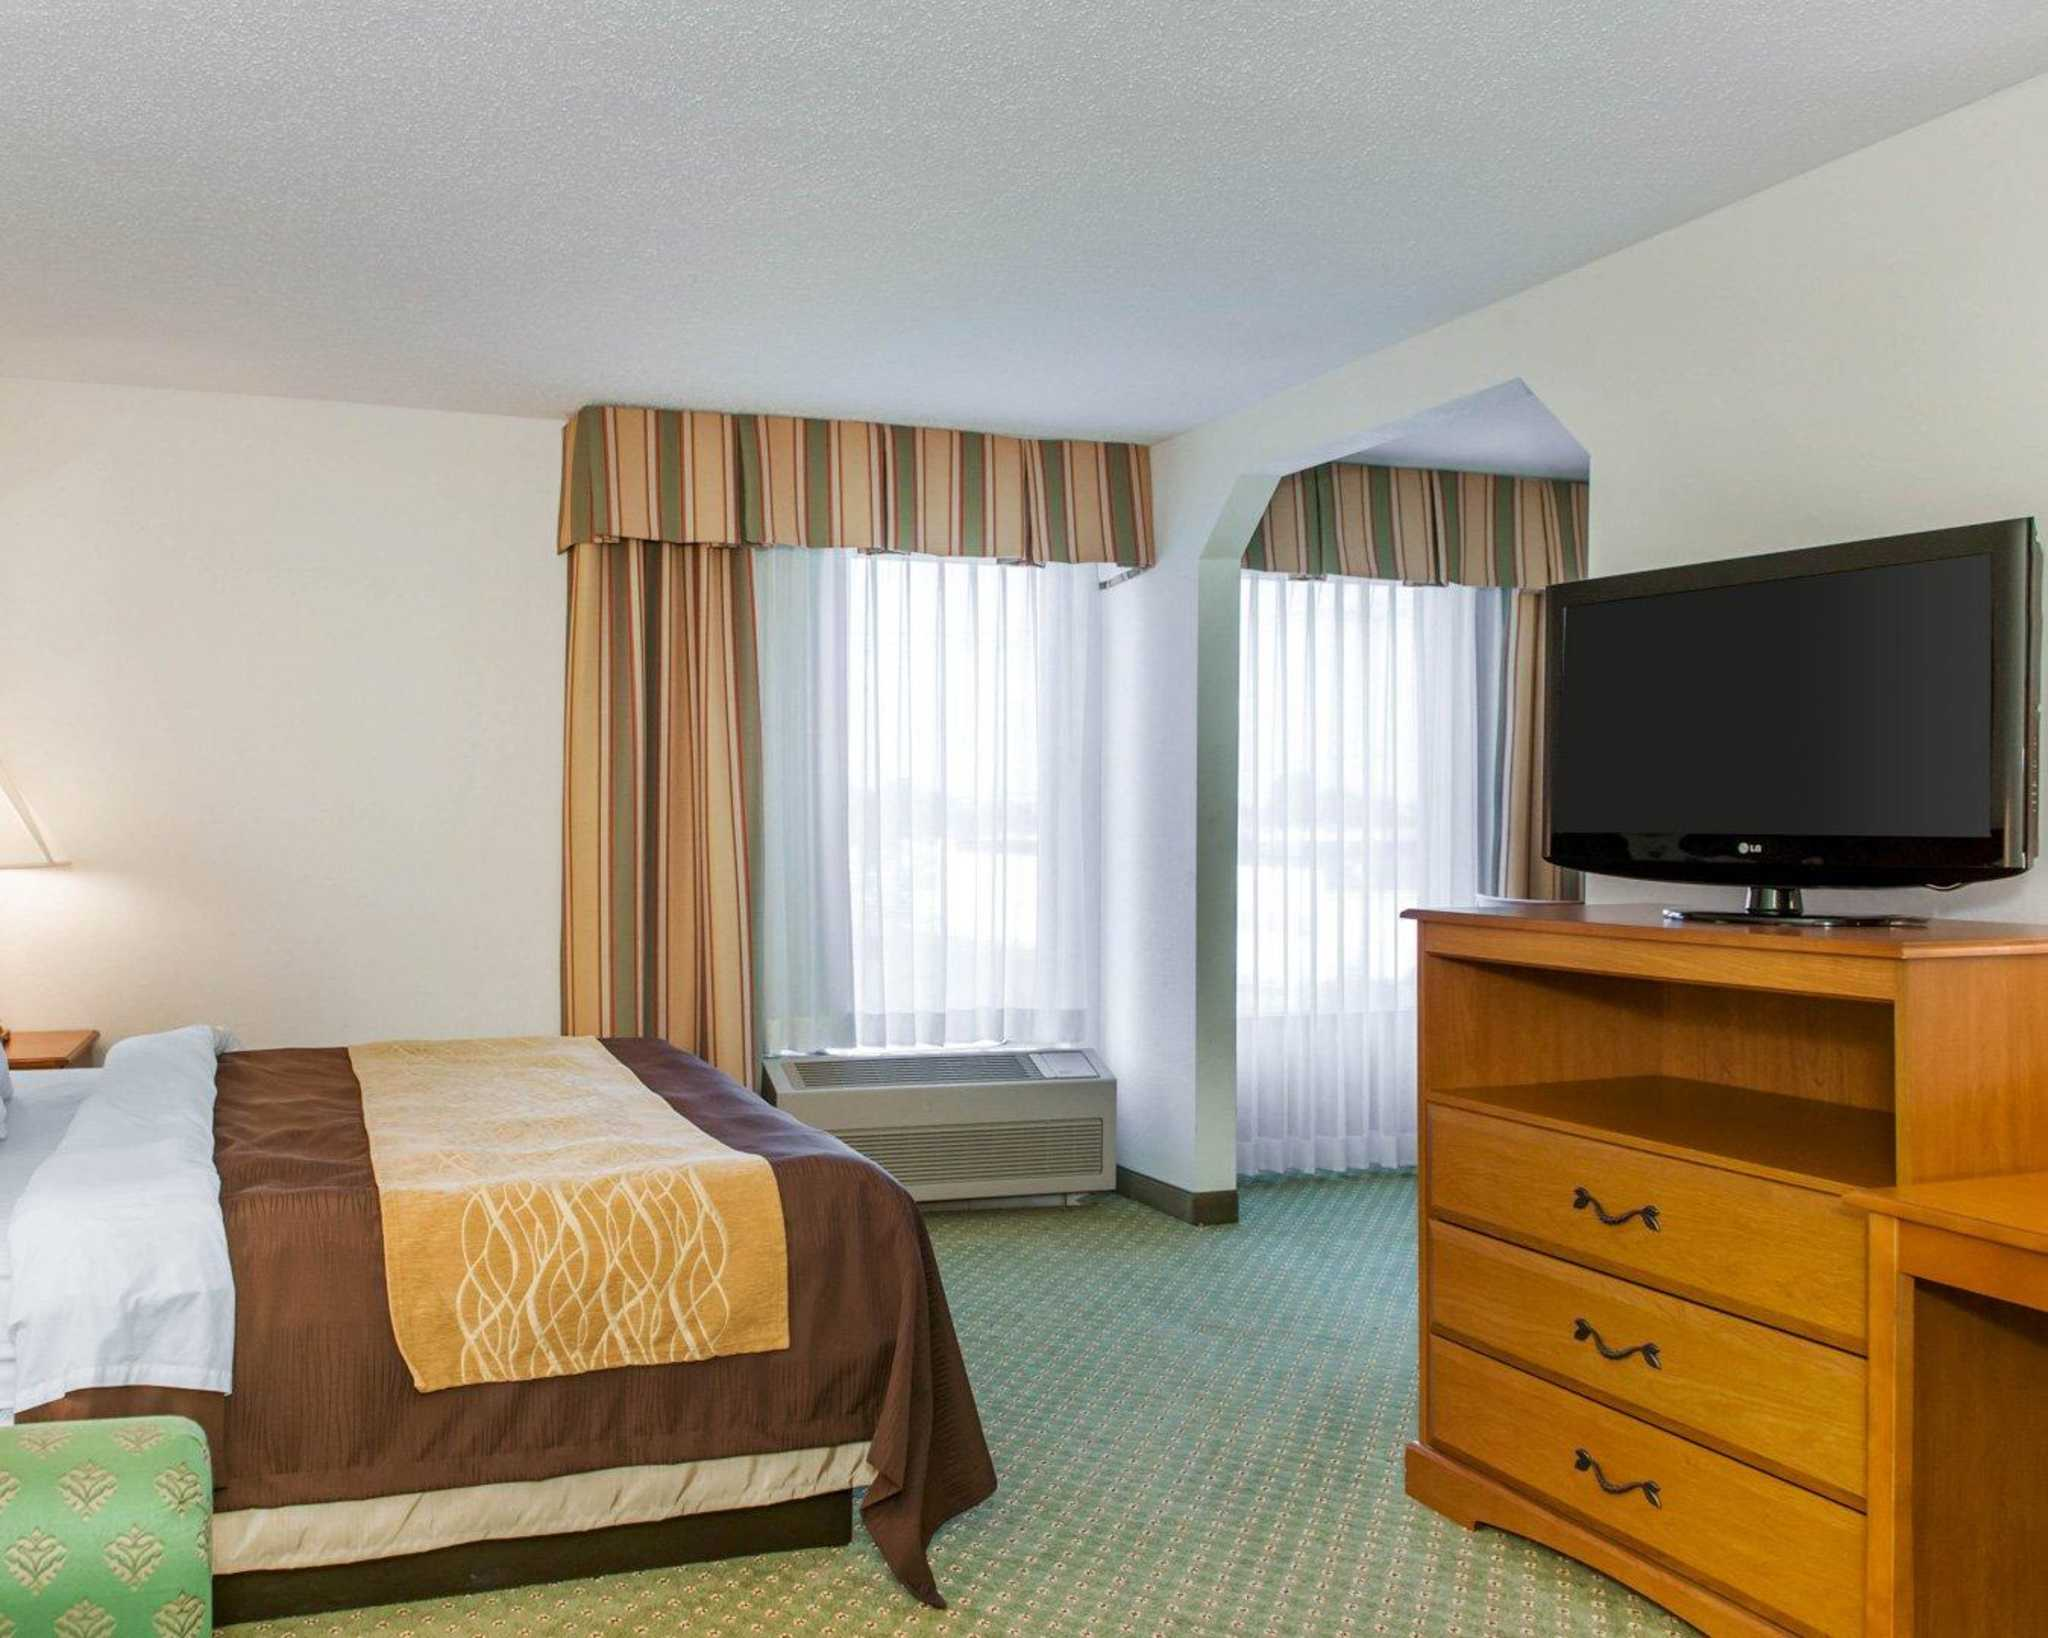 Quality Inn image 14